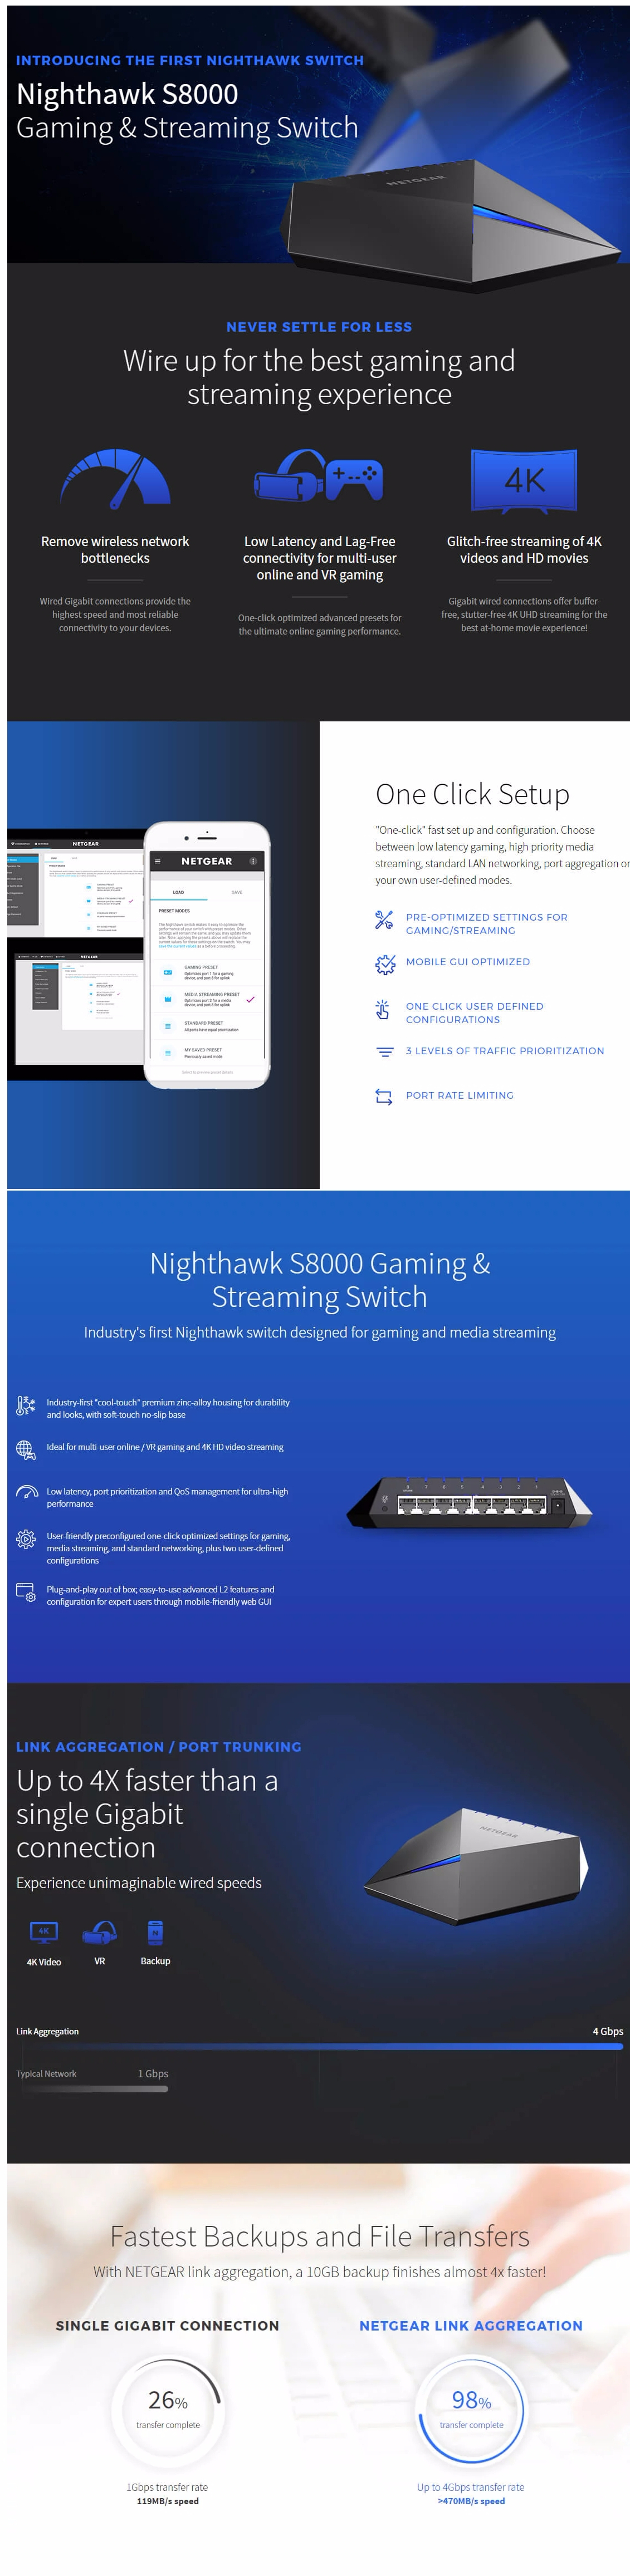 Netgear Nighthawk S8000 8-Port Gaming & Switch